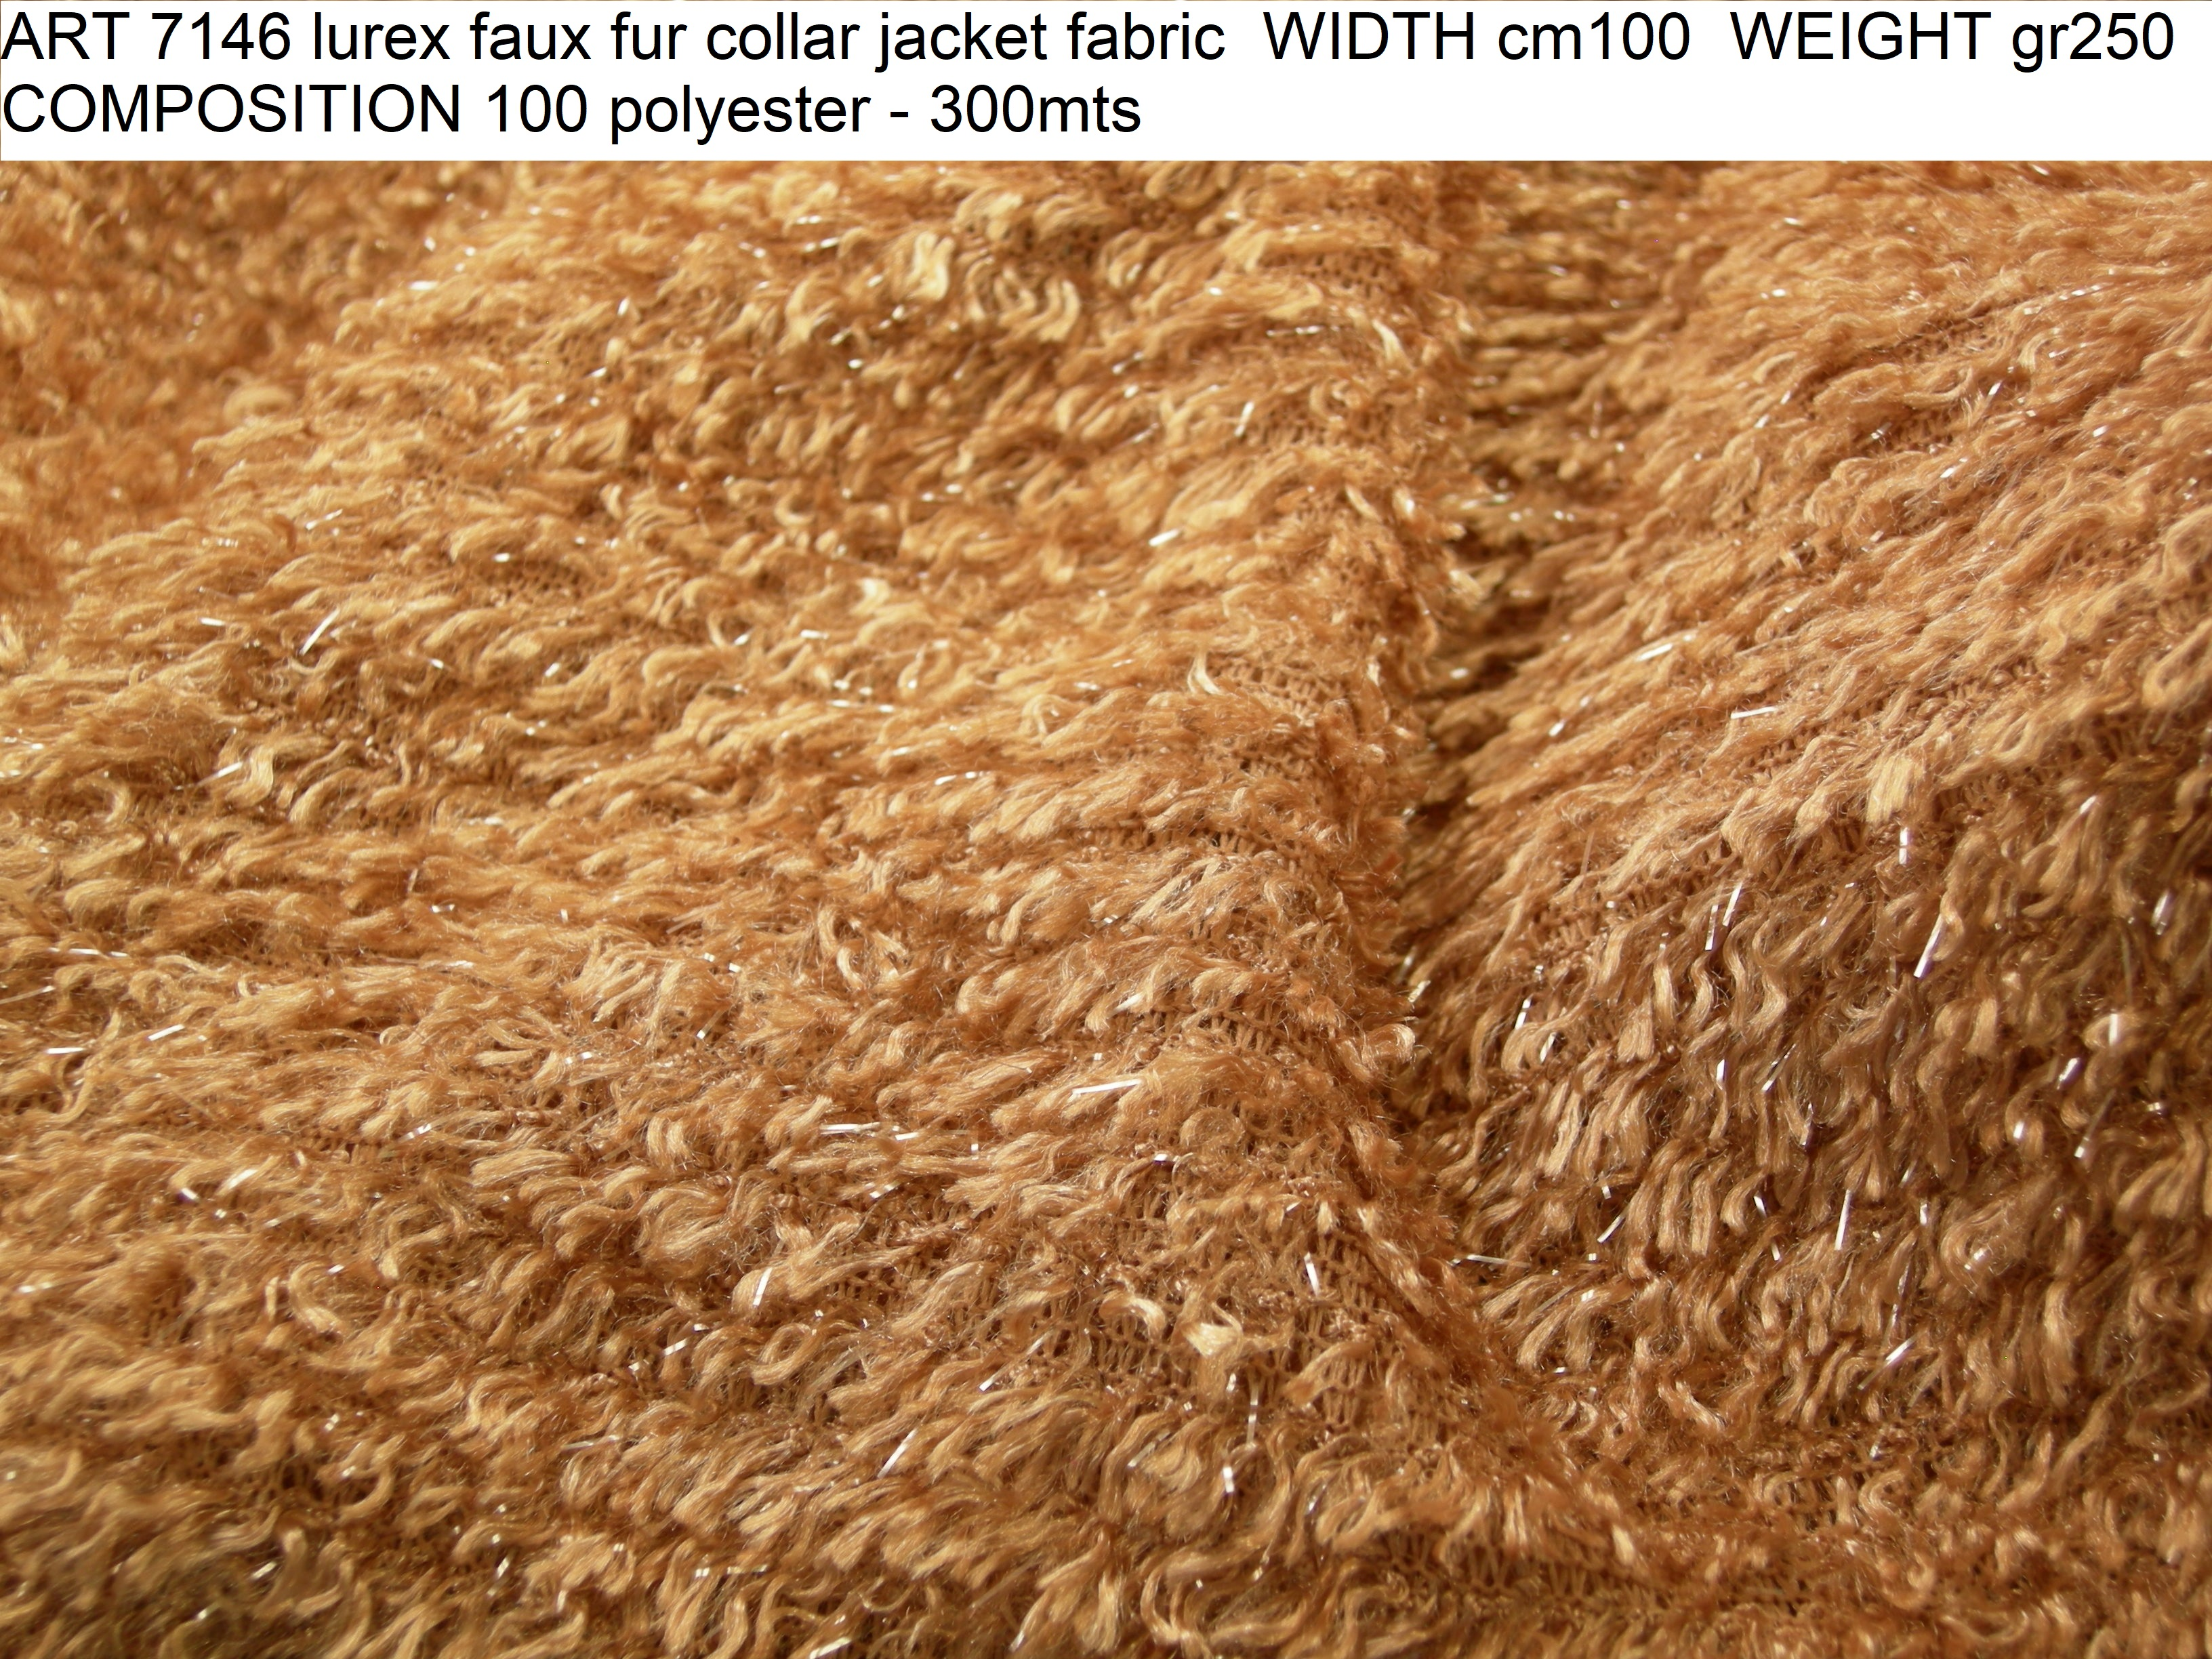 ART 7146 lurex faux fur collar jacket fabric WIDTH cm100 WEIGHT gr250 COMPOSITION 100 polyester - 300mts